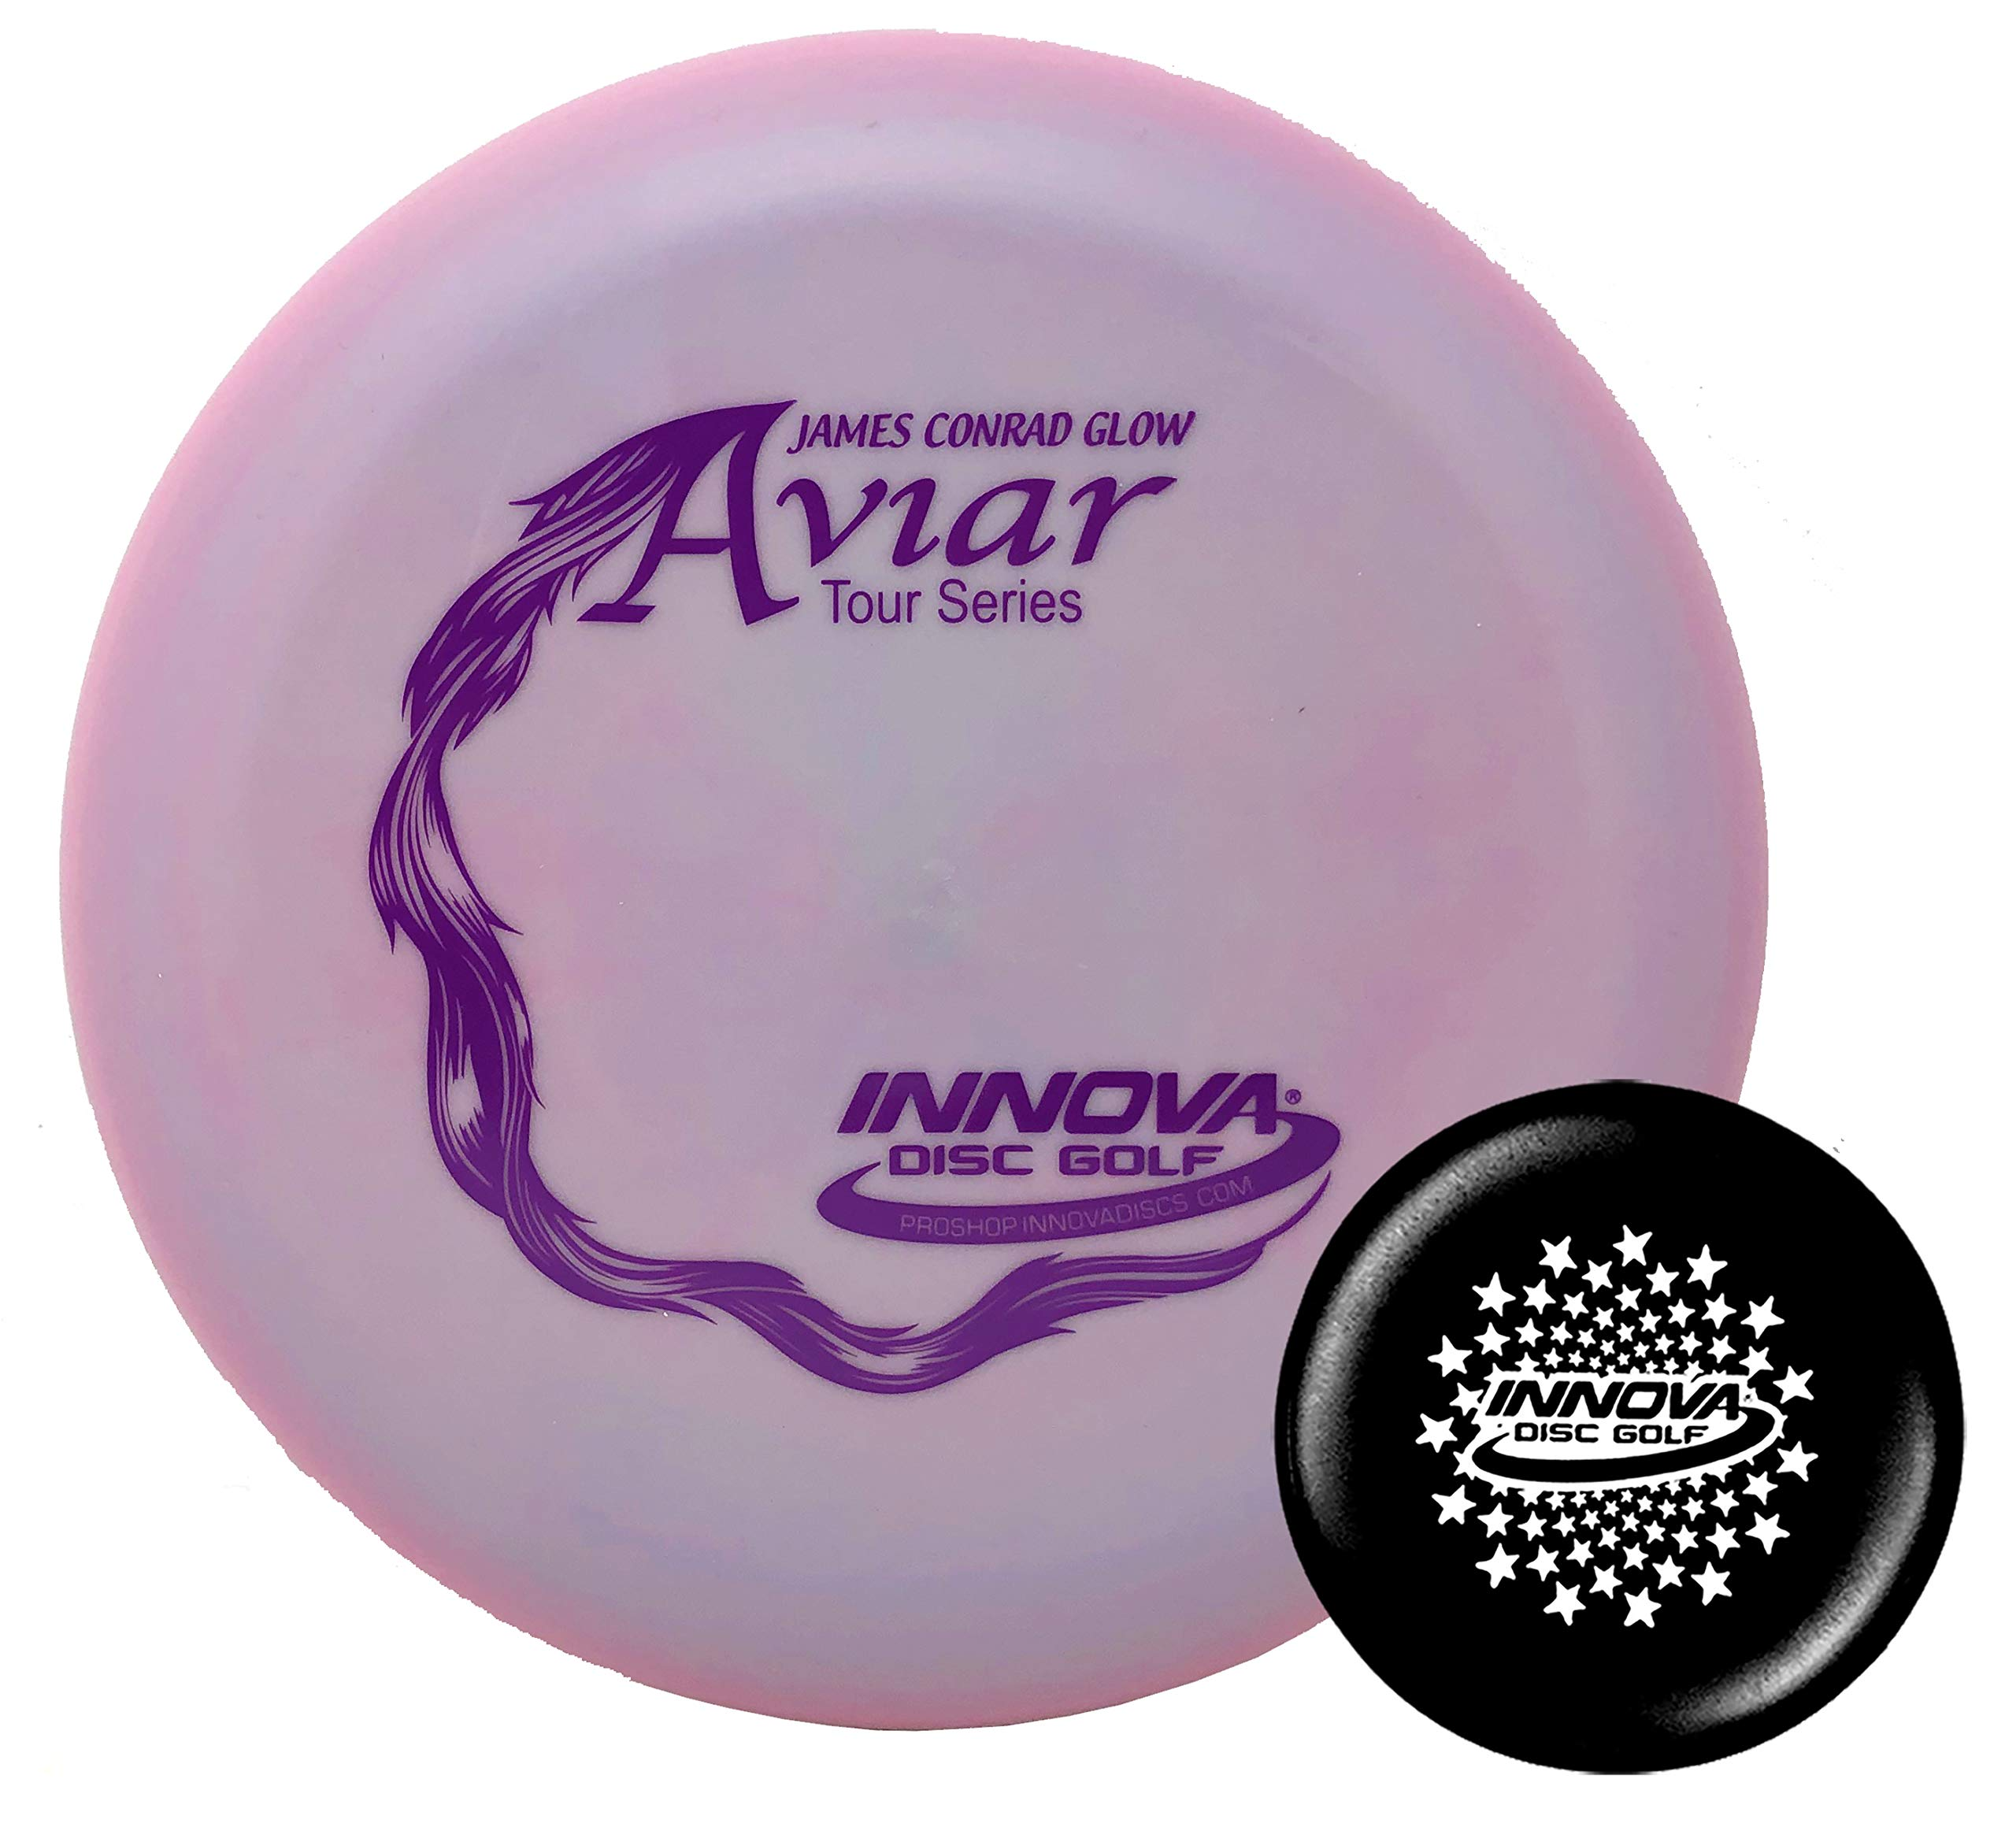 Innova Disc Golf Pro Glow Aviar James Conrad Tour Series 2019 Big Bead with Limited Edition Stars Stamped Innova Mini - Colors Will Vary - 173-175g by Innova Disc